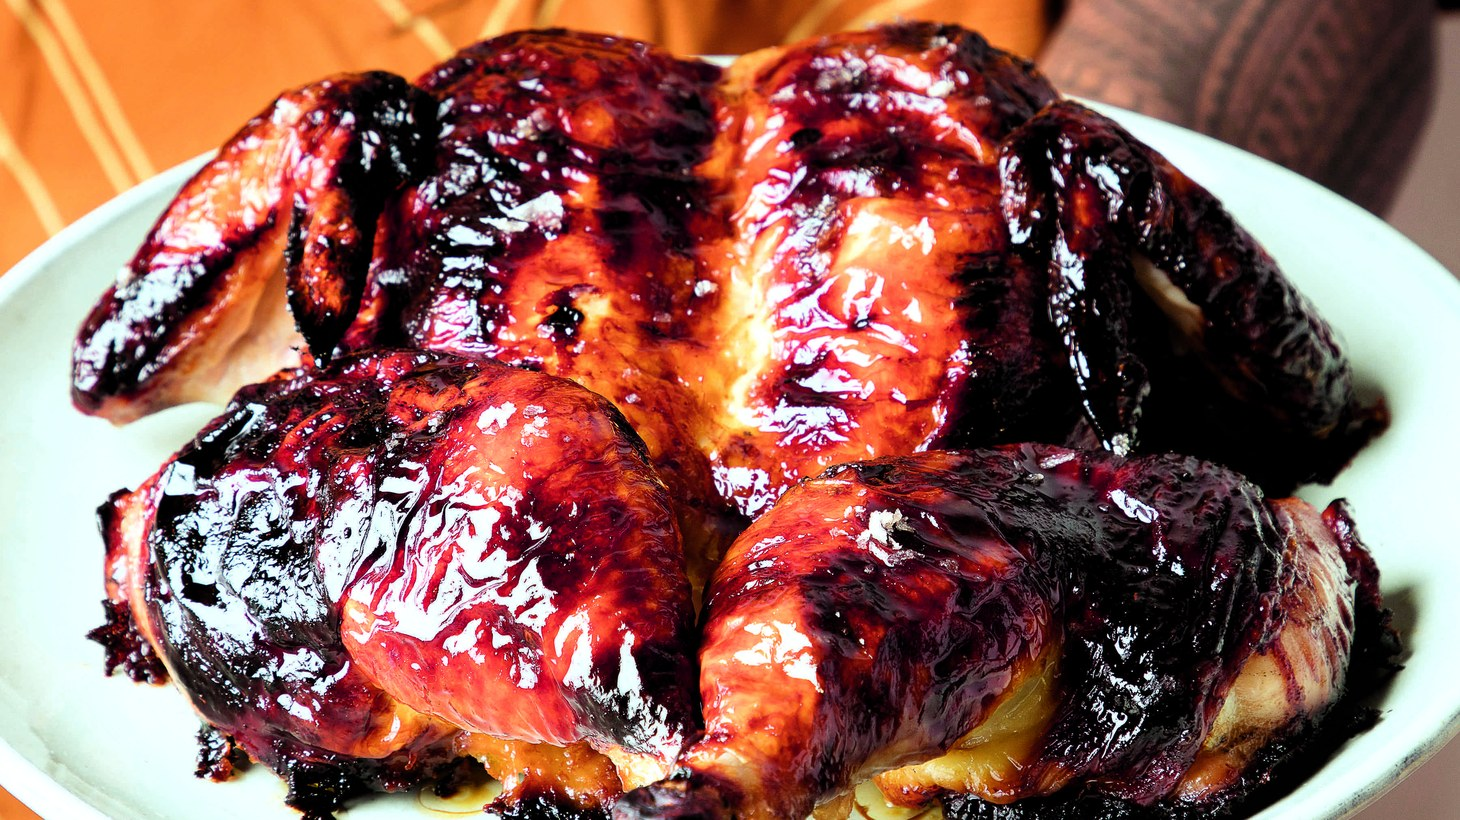 """""""Huli"""" means """"turn"""" in Hawaiian, a reference to the grills used to make the iconic chicken dish in Hawaii."""